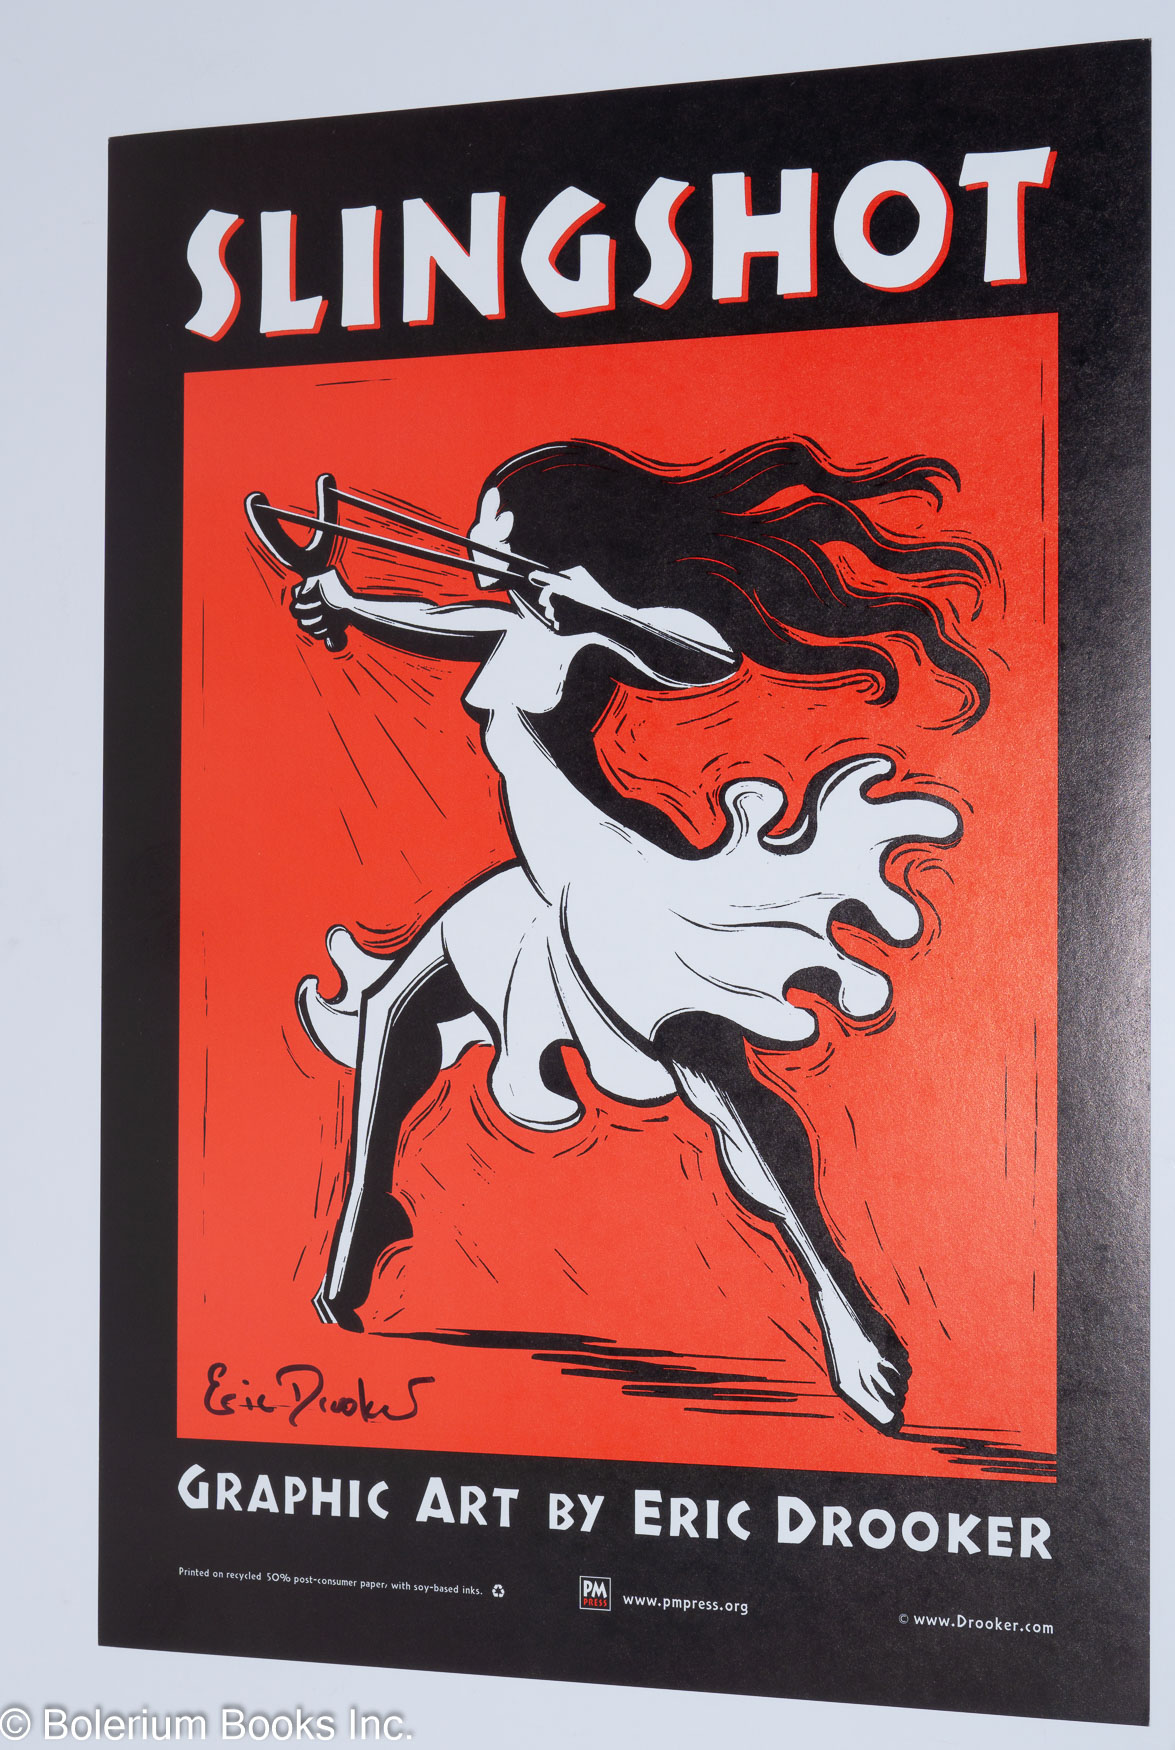 Art Of Eric Drooker Slingshot Poster By Eric Drooker On Bolerium Books